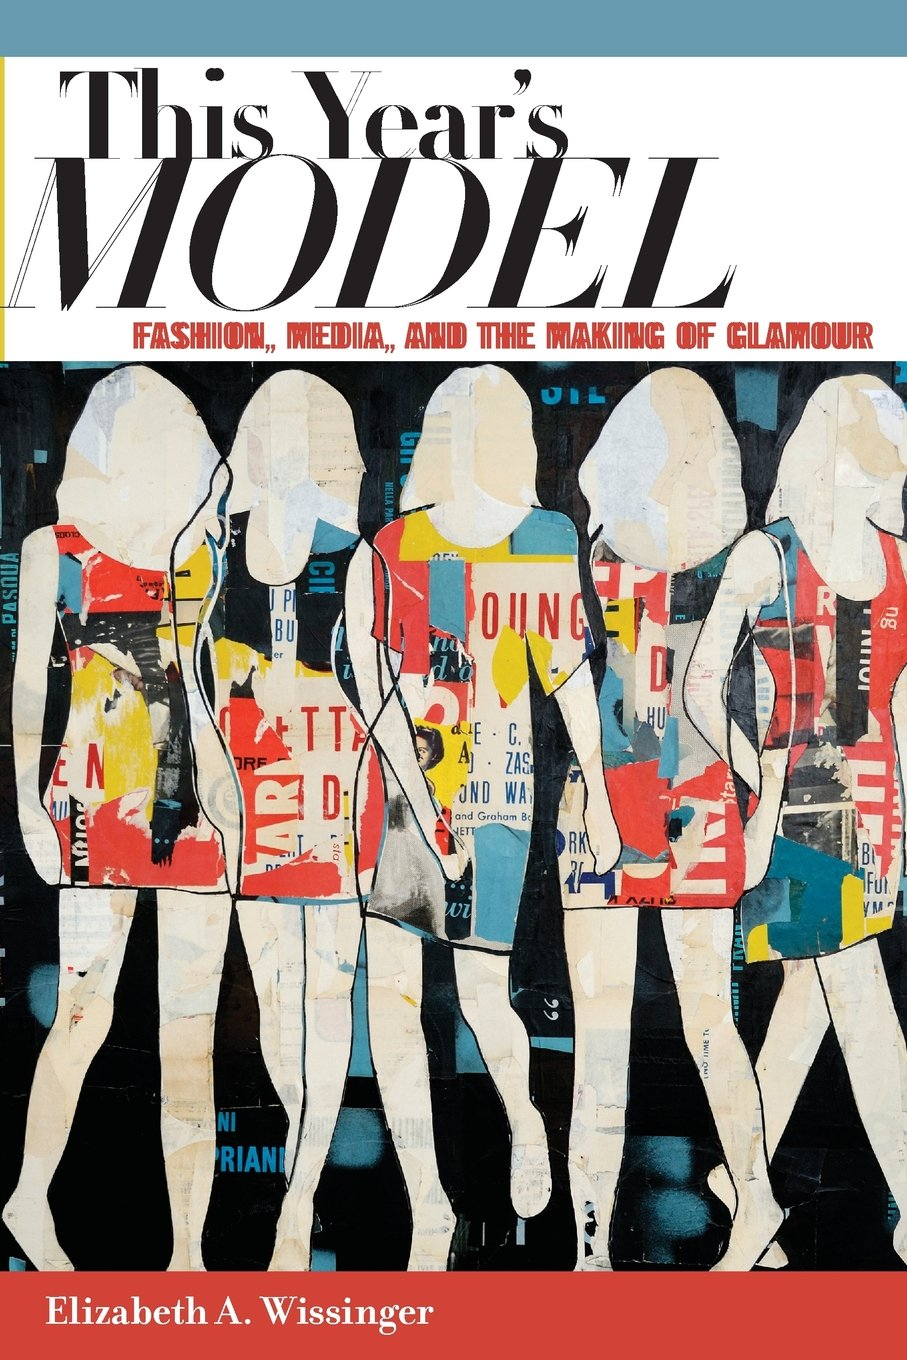 This Year's Model: Fashion, Media, and the Making of Glamour by Elizabeth Wissinger